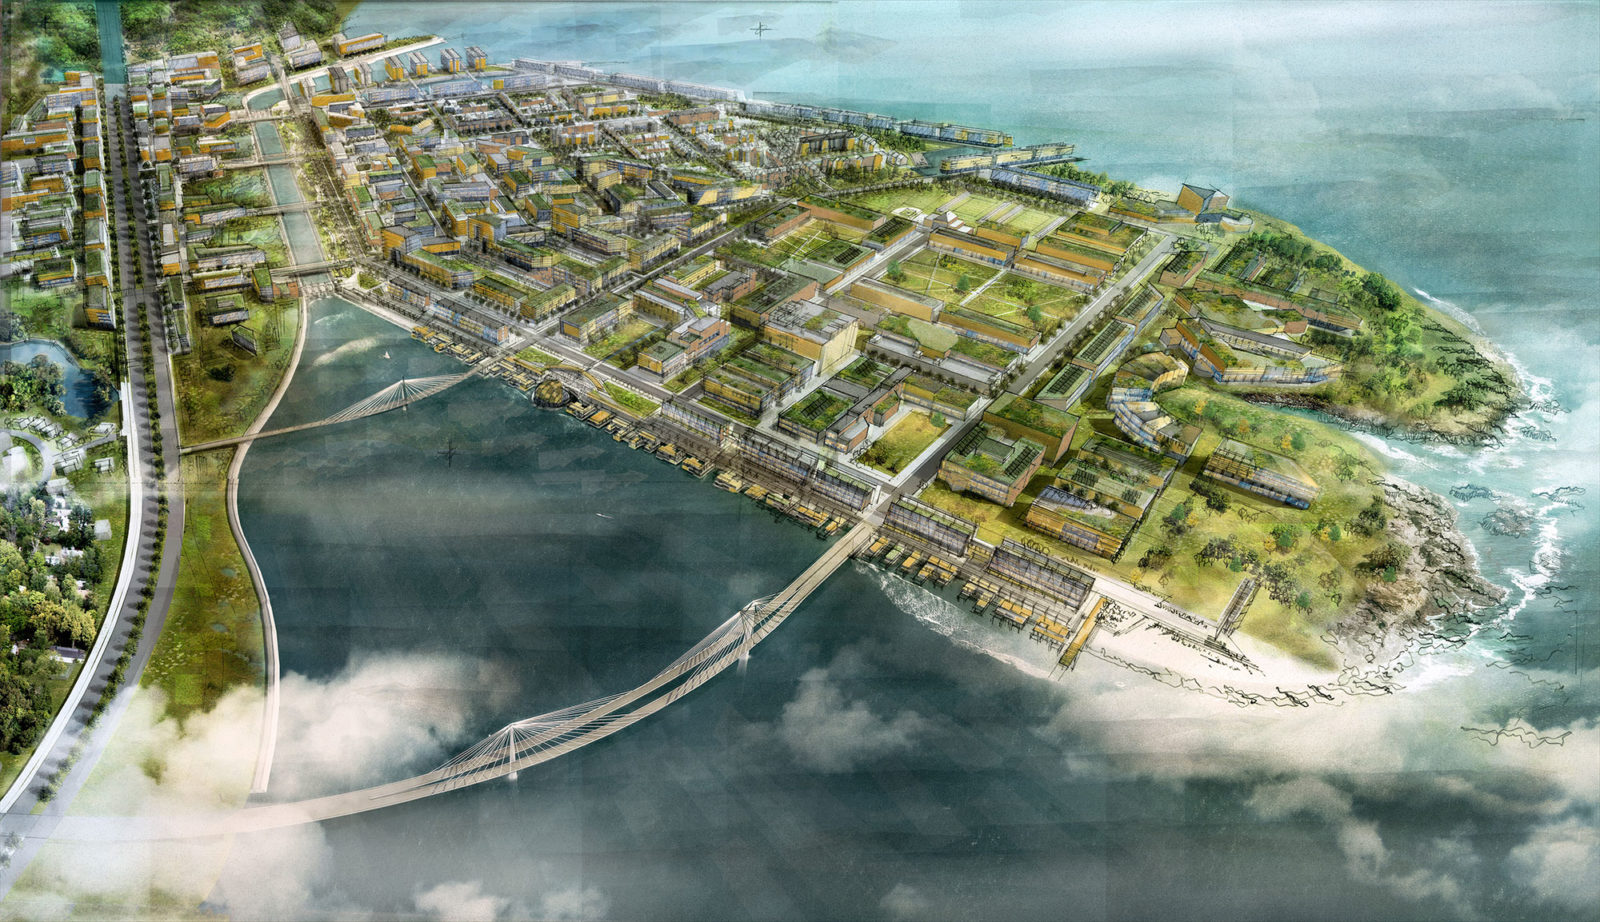 A new hydroelectric canal reuses fresh and marine water to